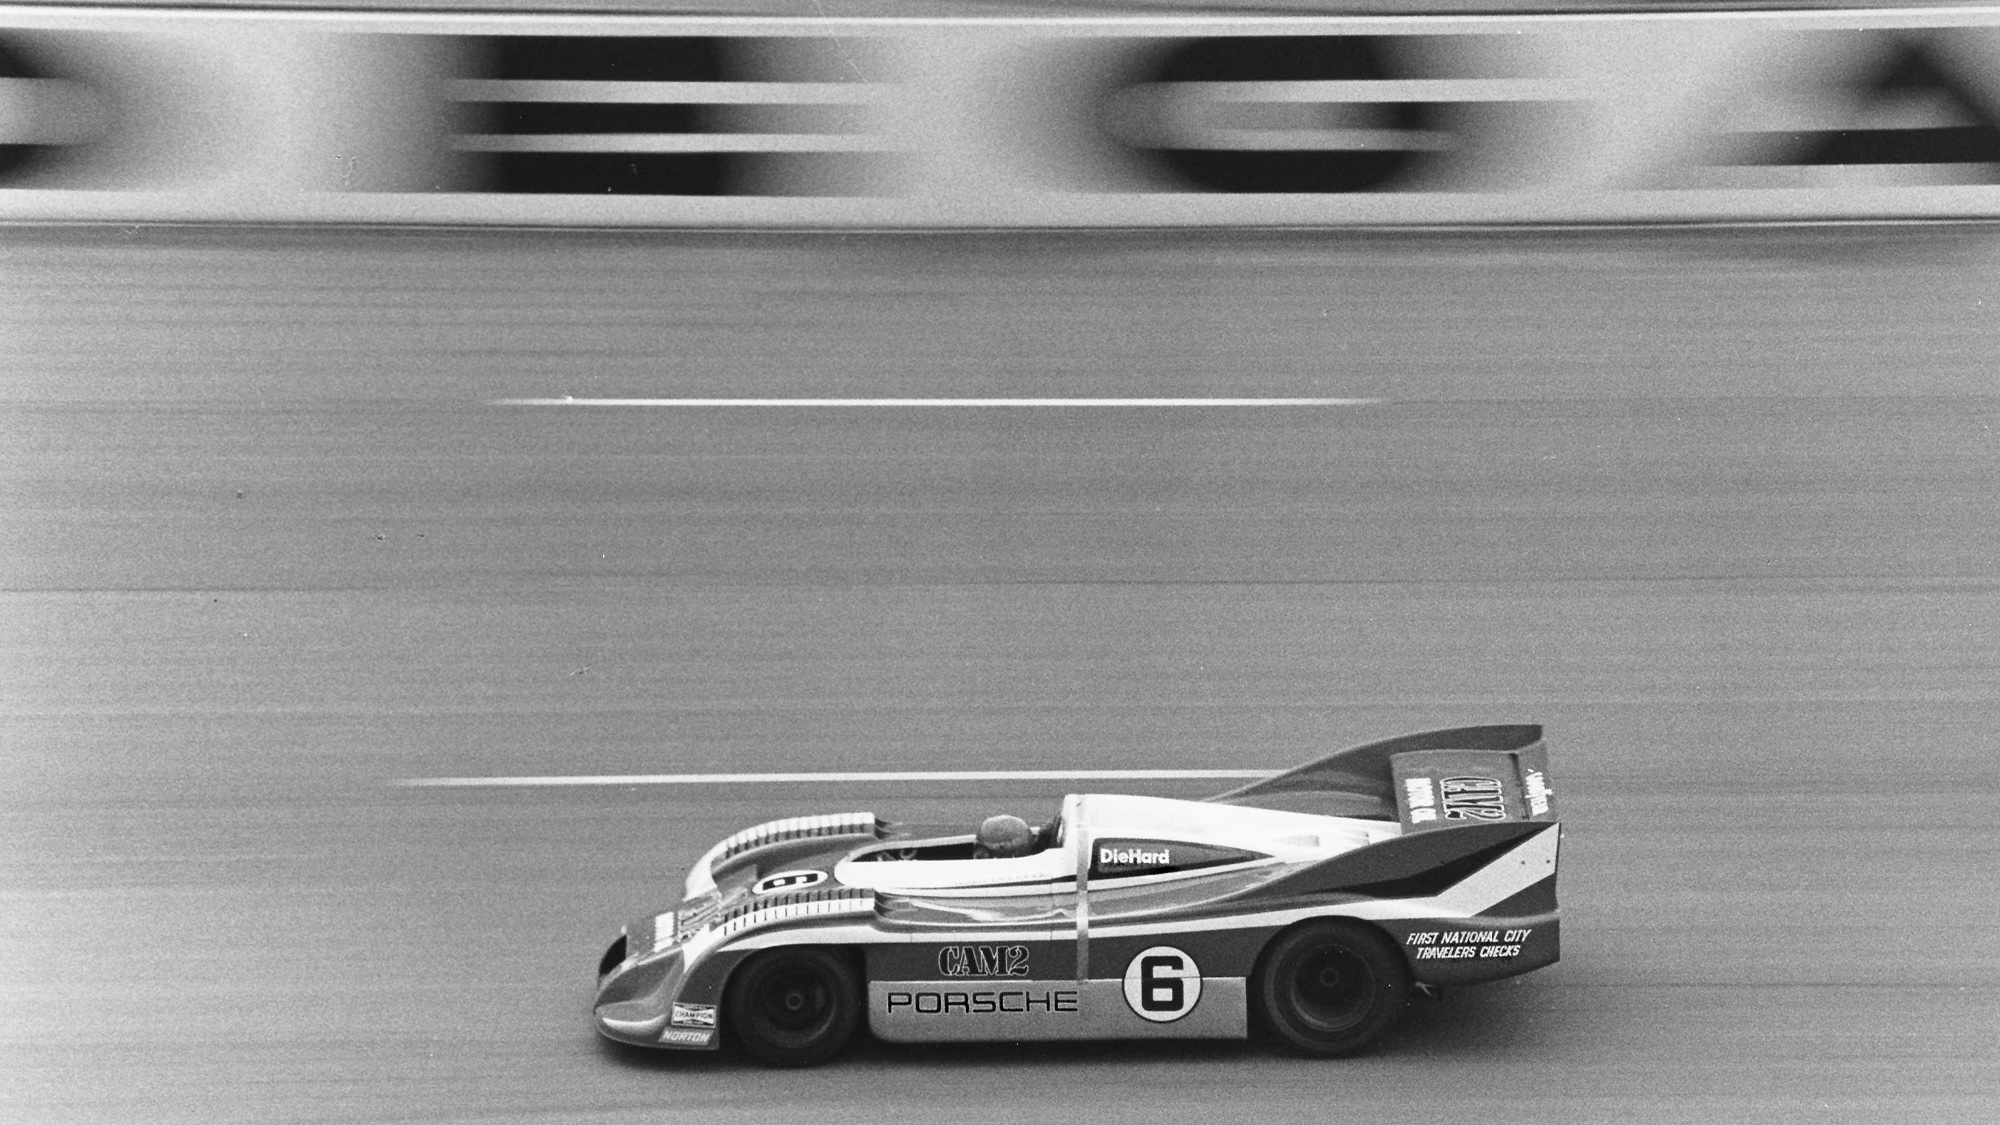 Mark Donohue on his way to setting a world closed-course speed record of 221.160mph at the Alabama International Speedway in a Porsche 917-30 in 1975